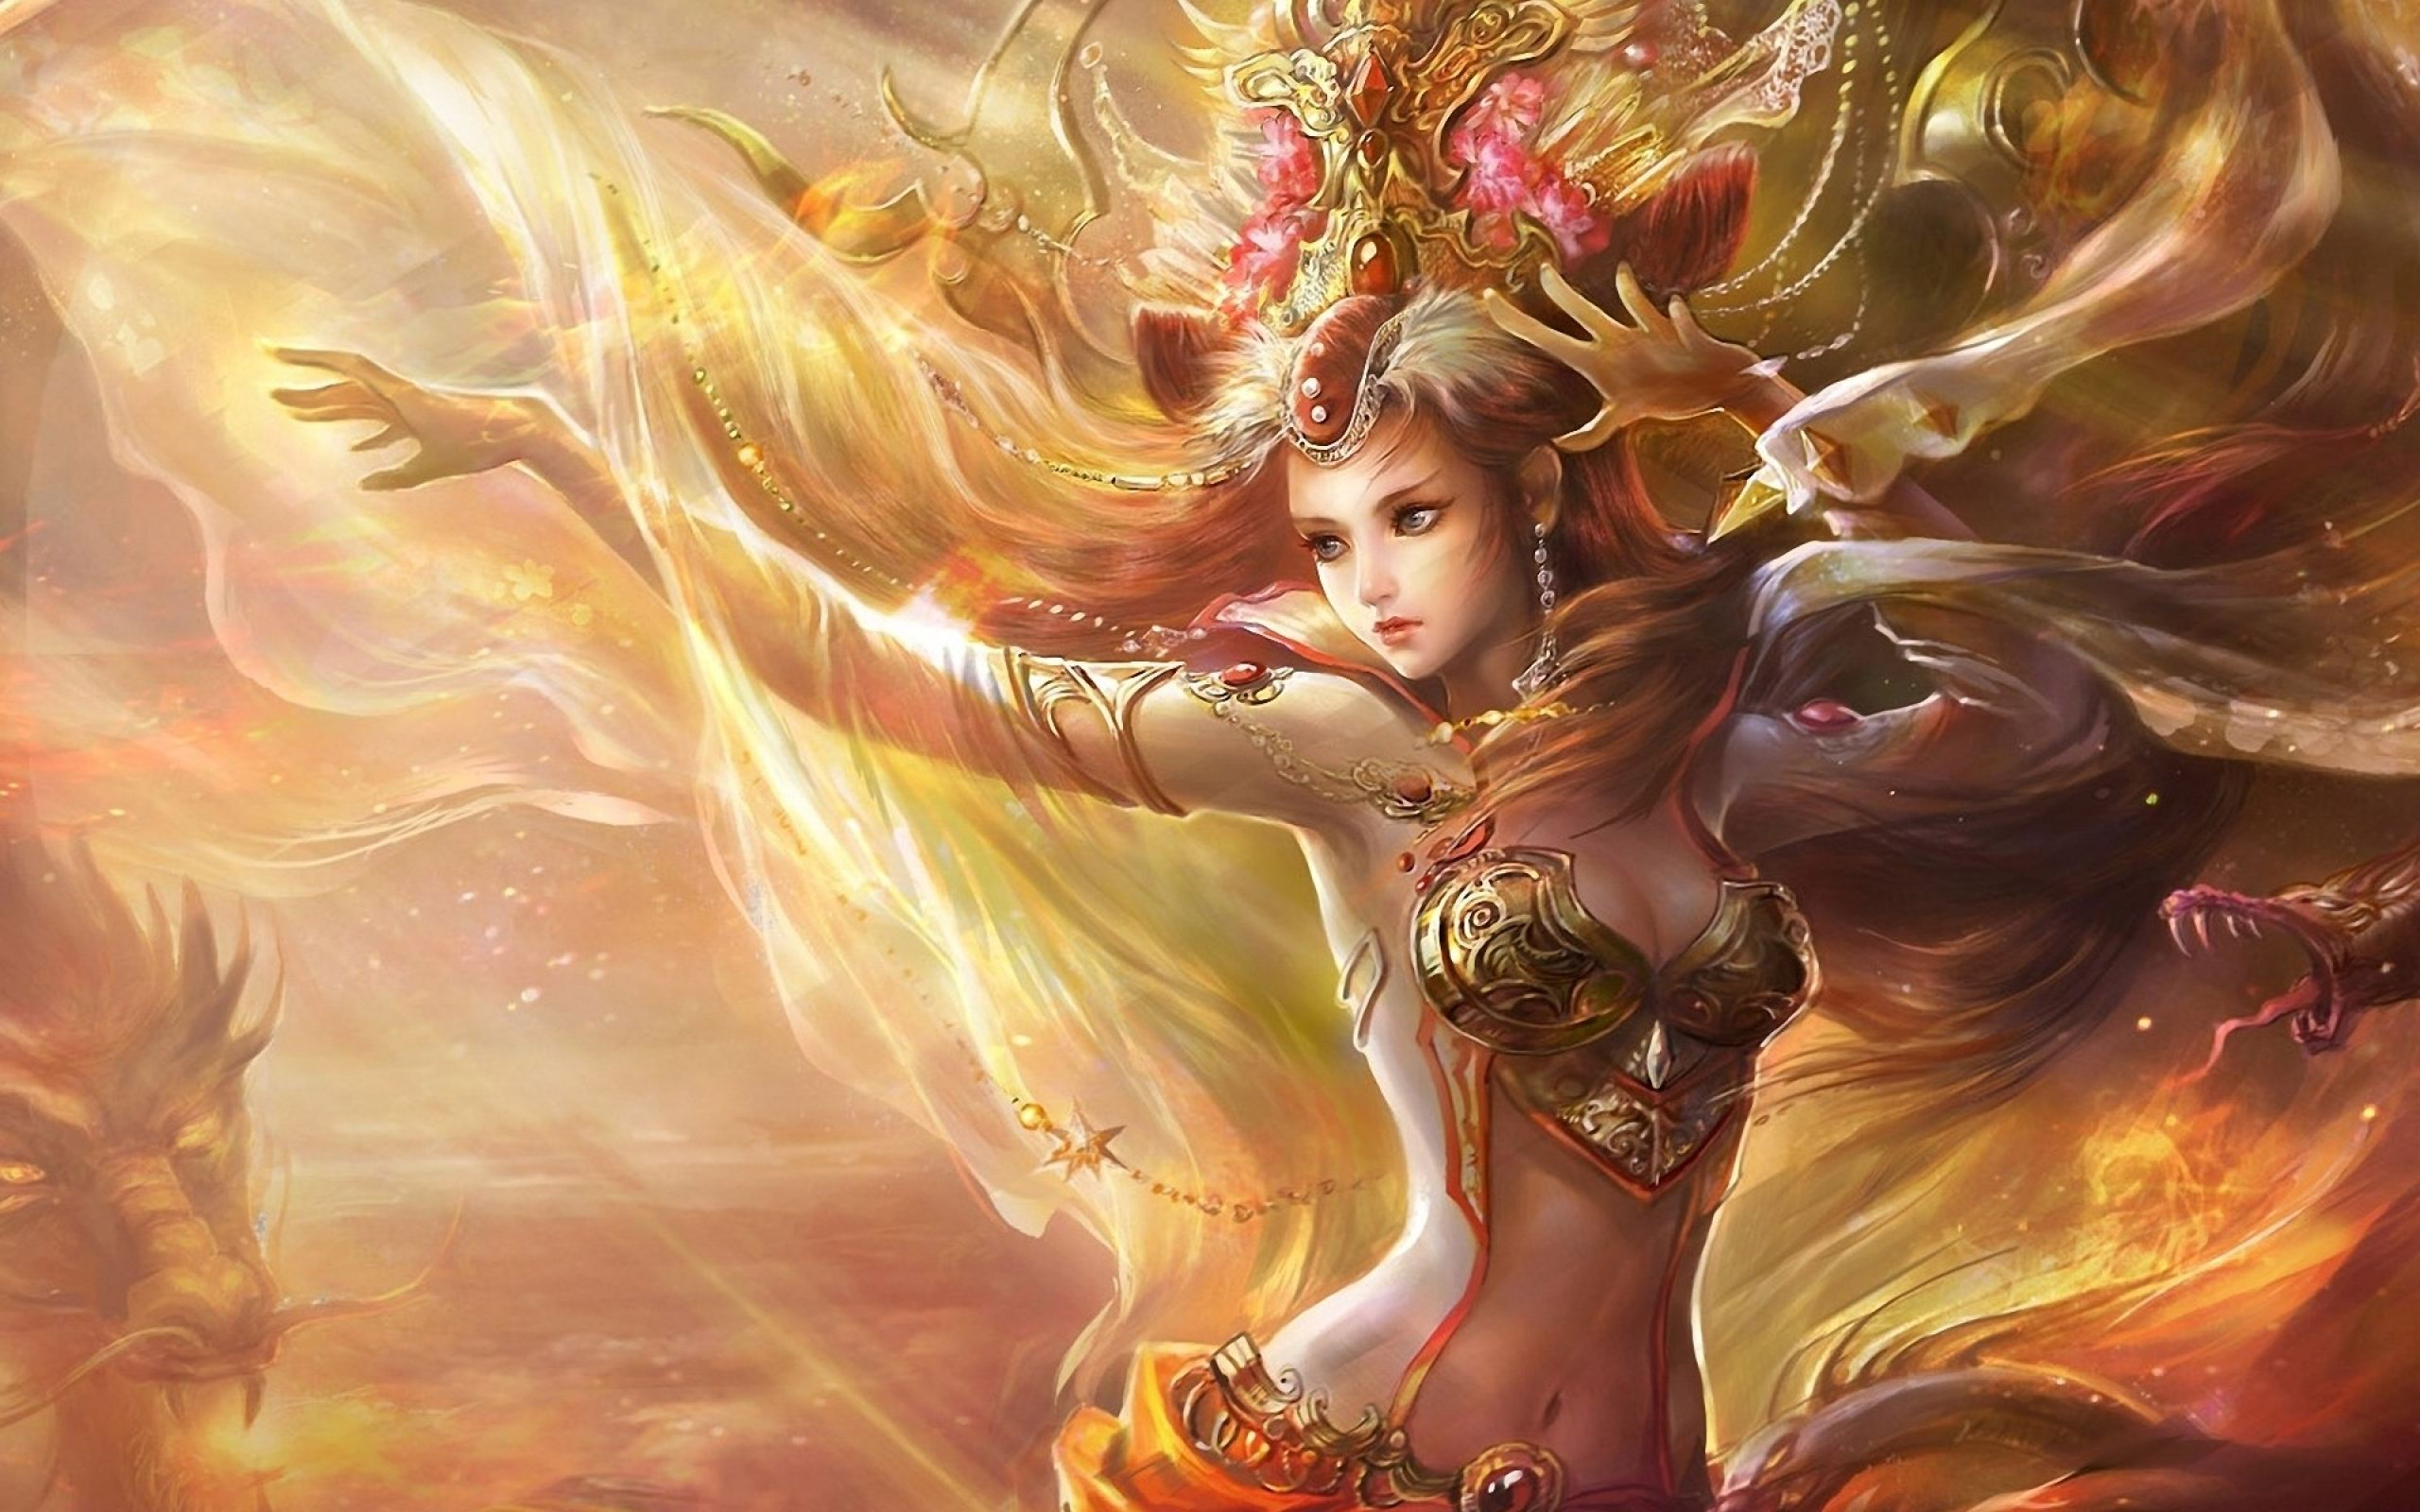 Women Fantasy Art Artwork HD Wallpaper For Desktop 2560x1600